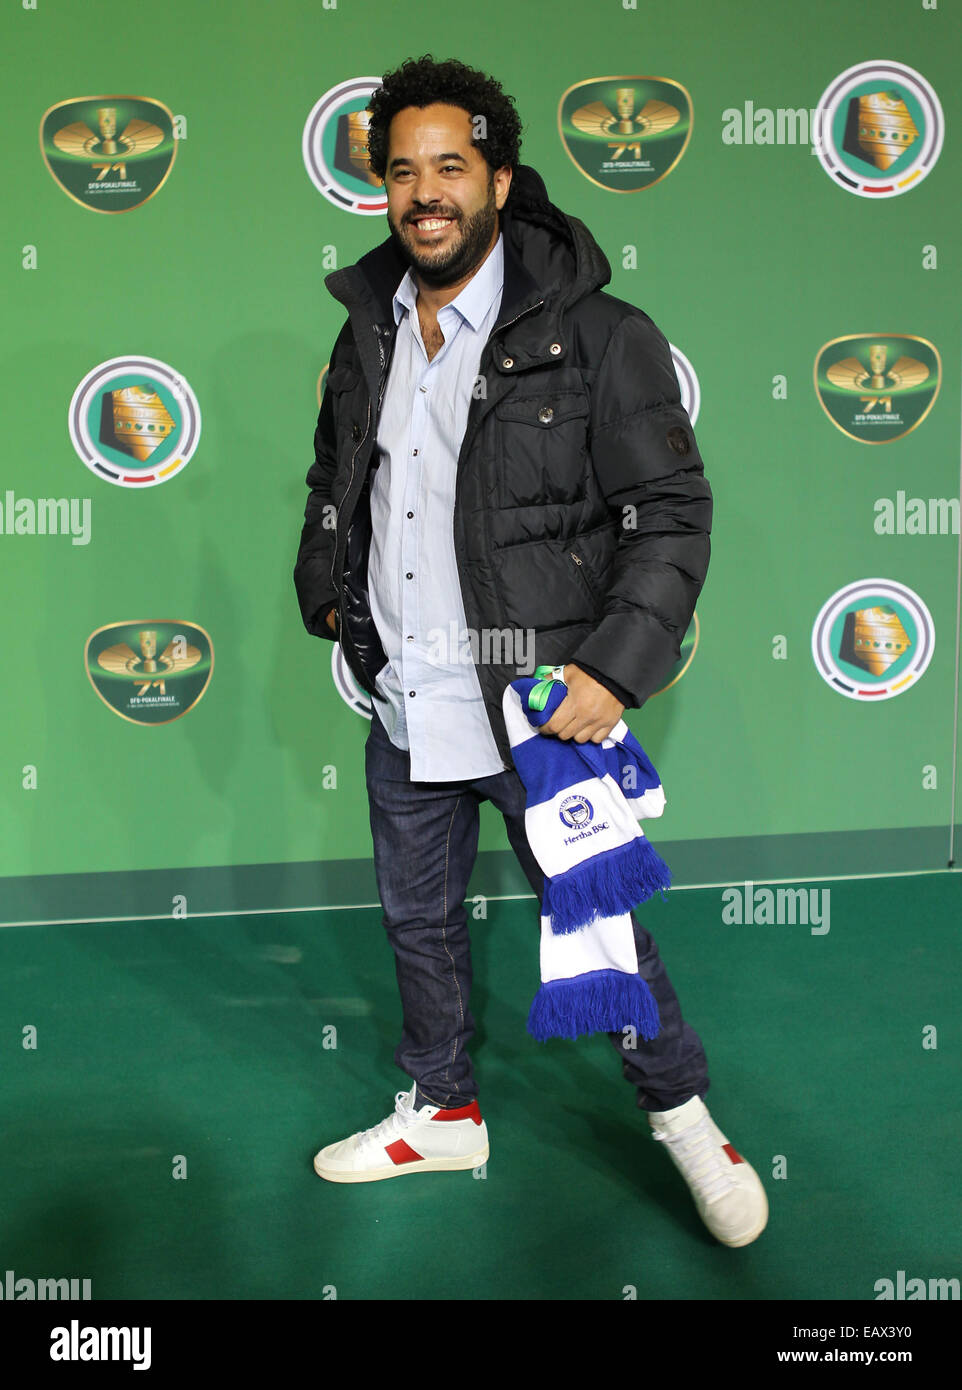 adel tawil münchen